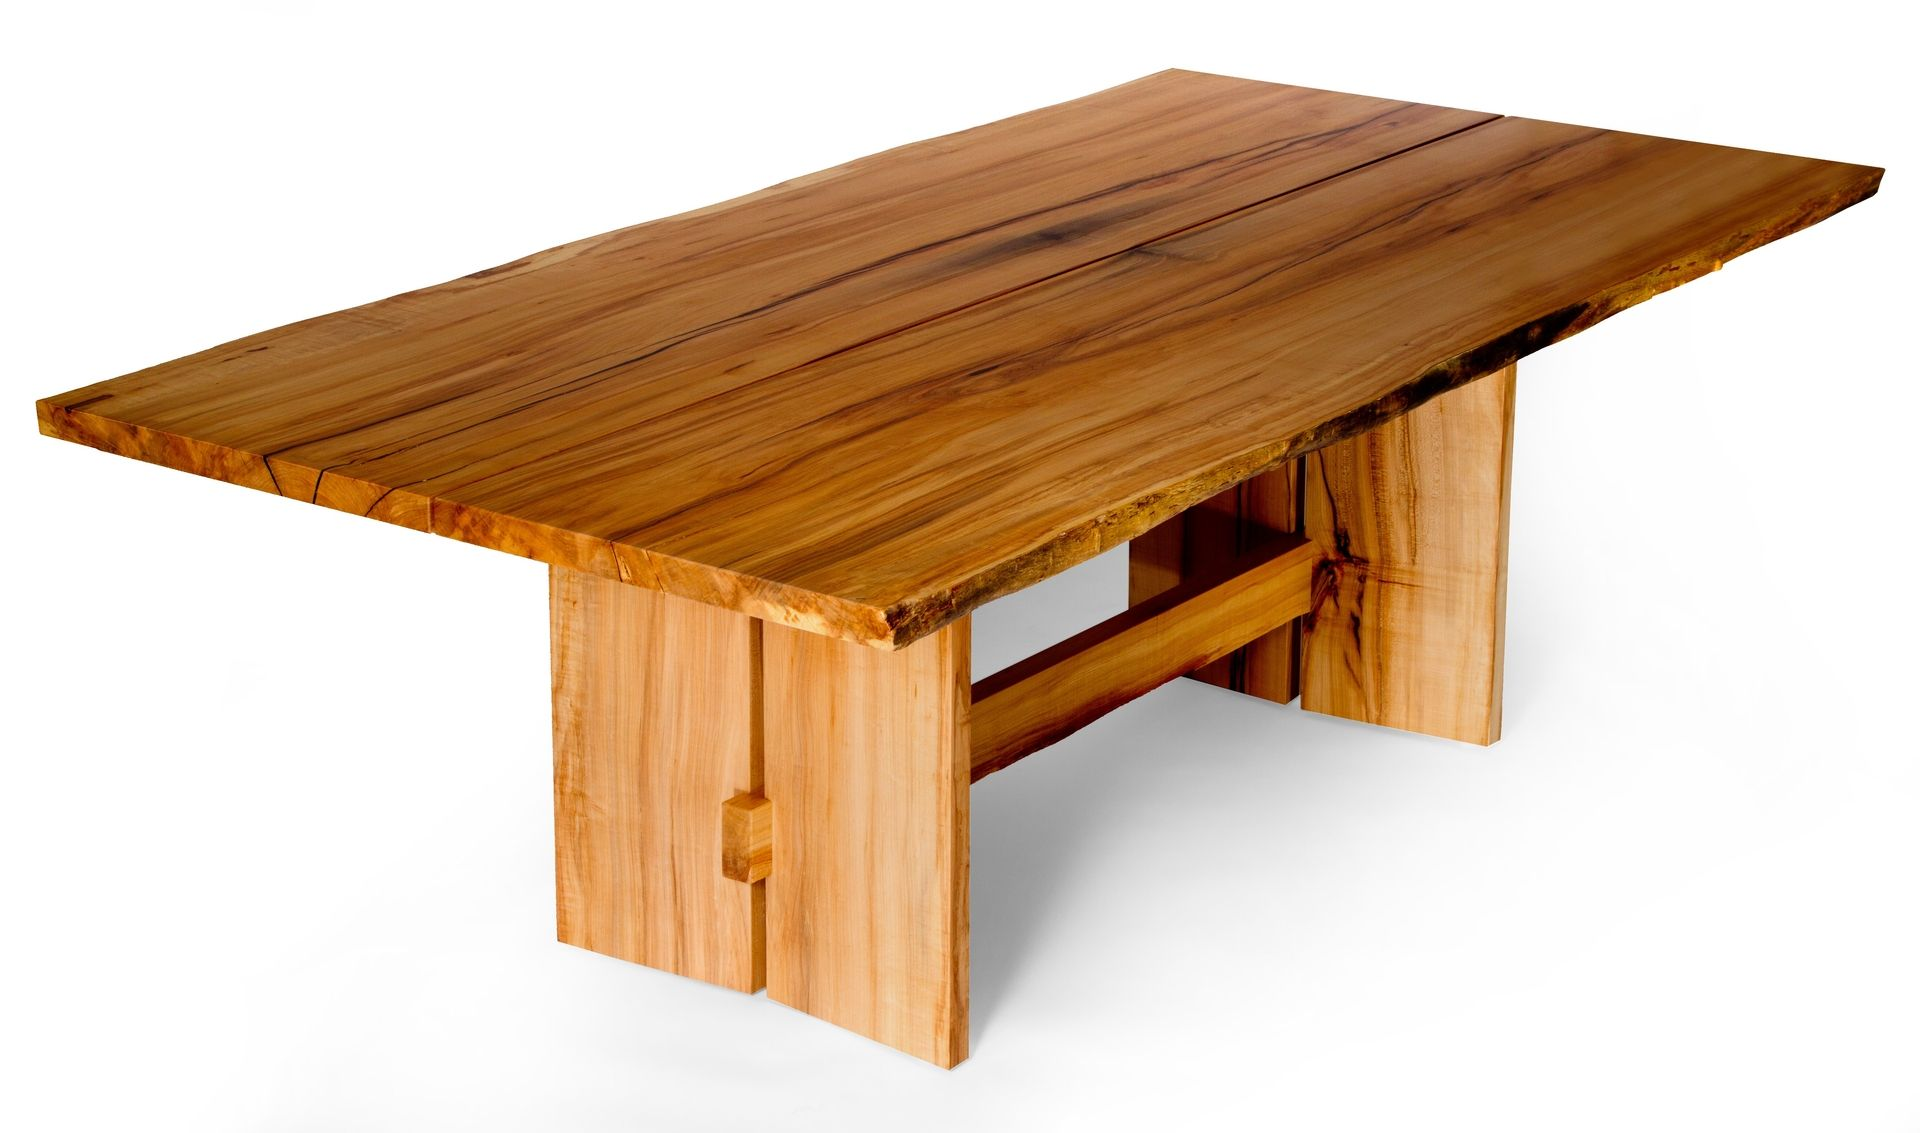 live edge slab maple dining table - Maple Kitchen Table